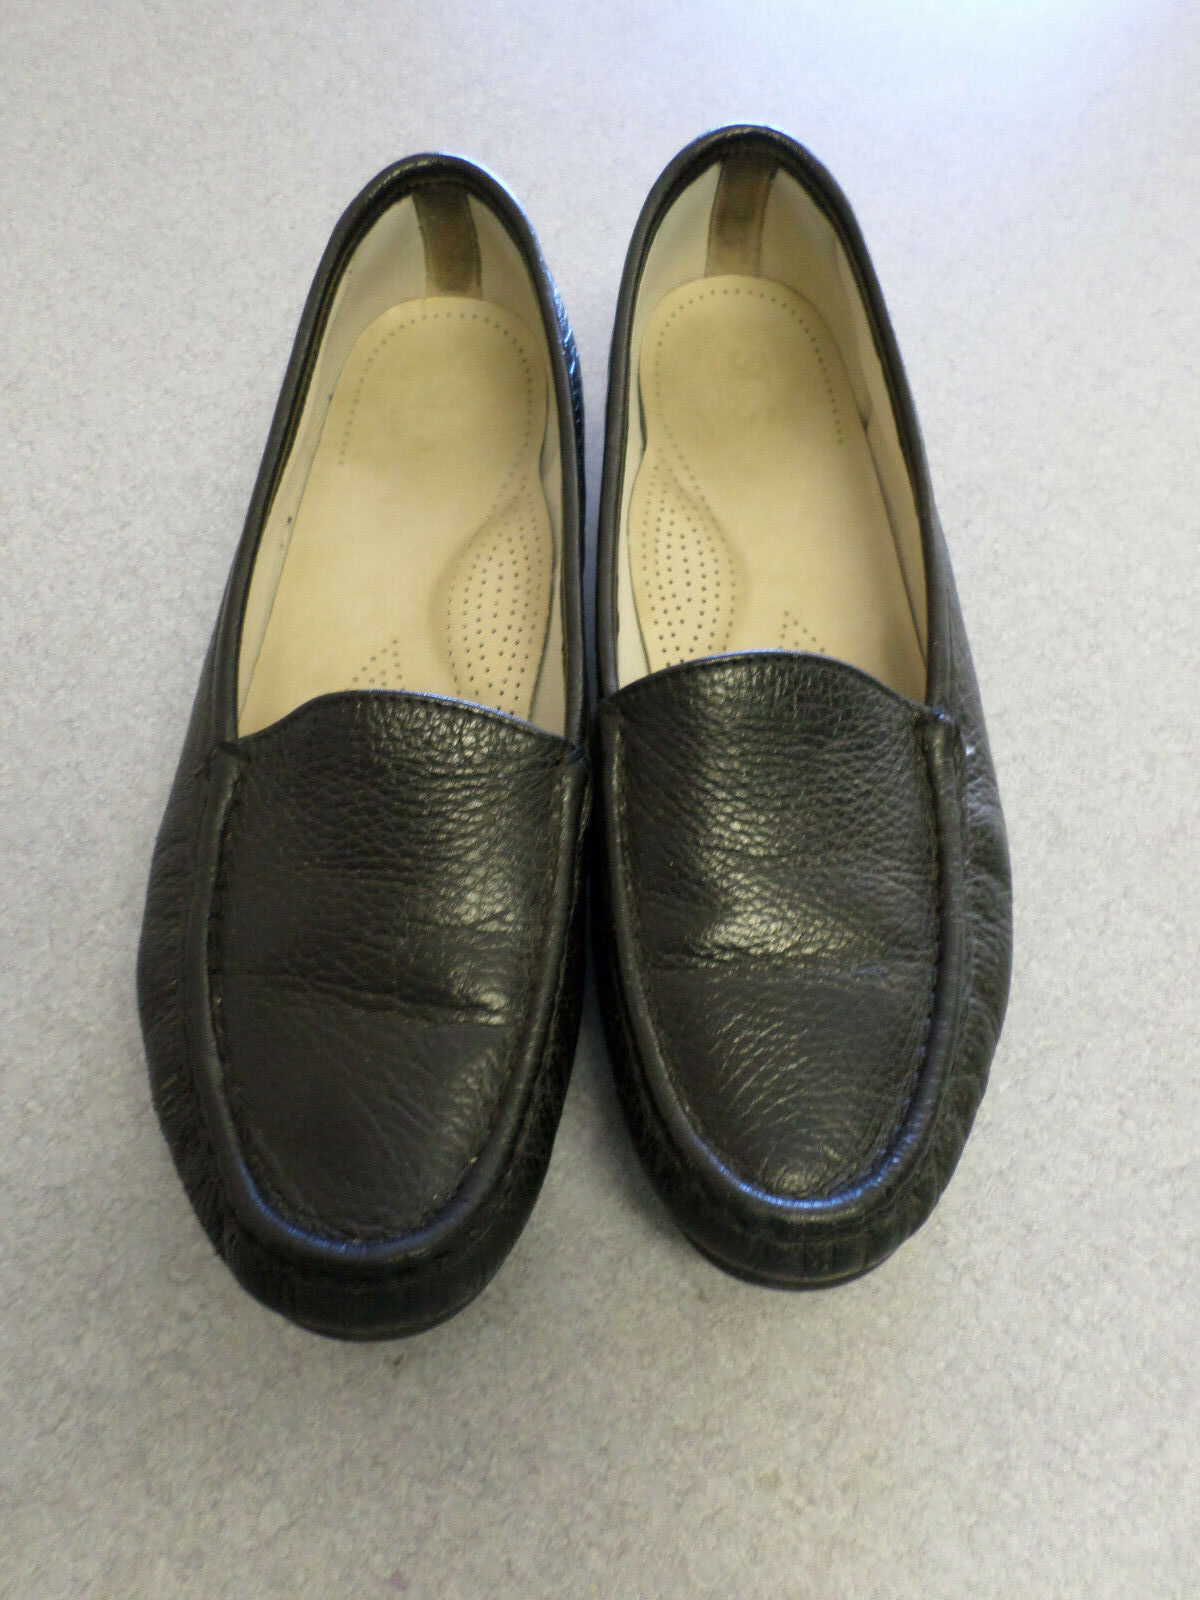 SAS Black Leather Loafers Women's 10.5 Narrow made in USA